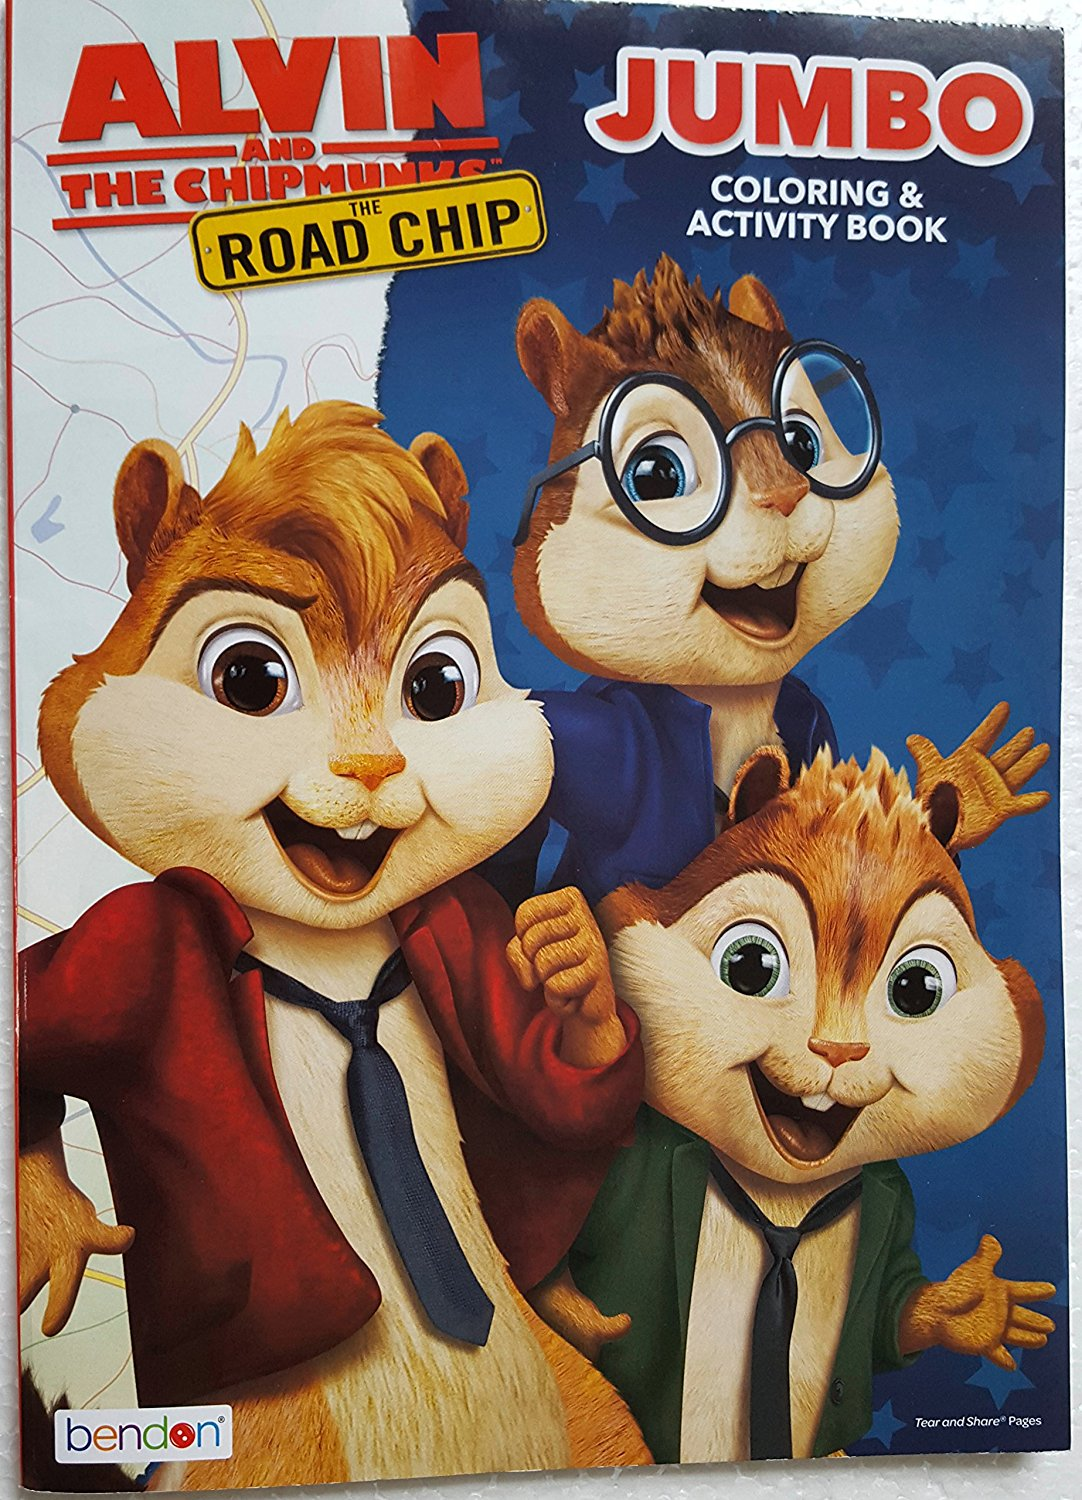 Alvin And The Chipmunks 3 Images drawing & painting supplies 3 coloring books, over 30